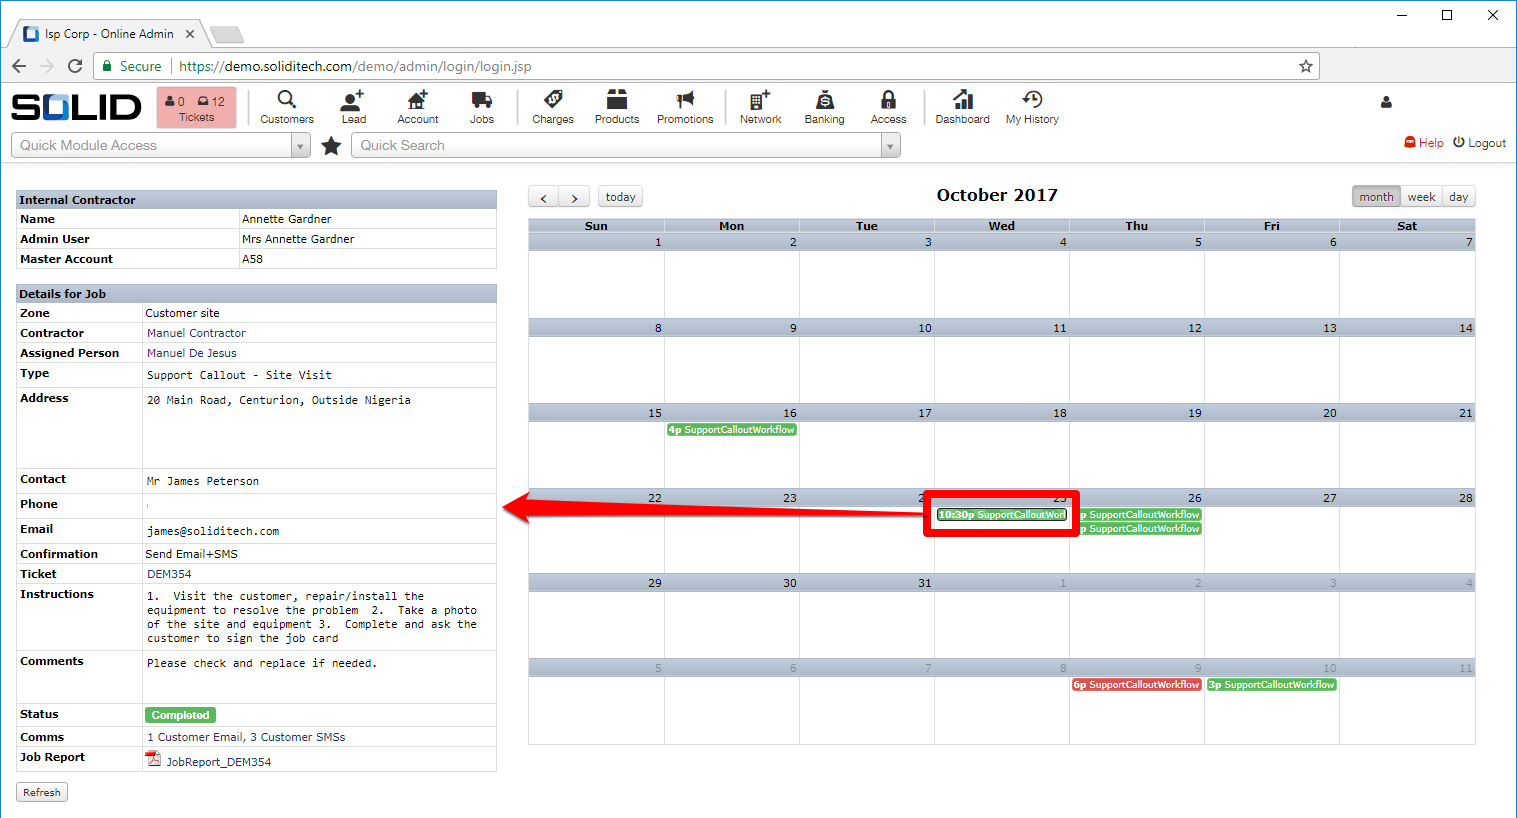 Calendar view with annotations